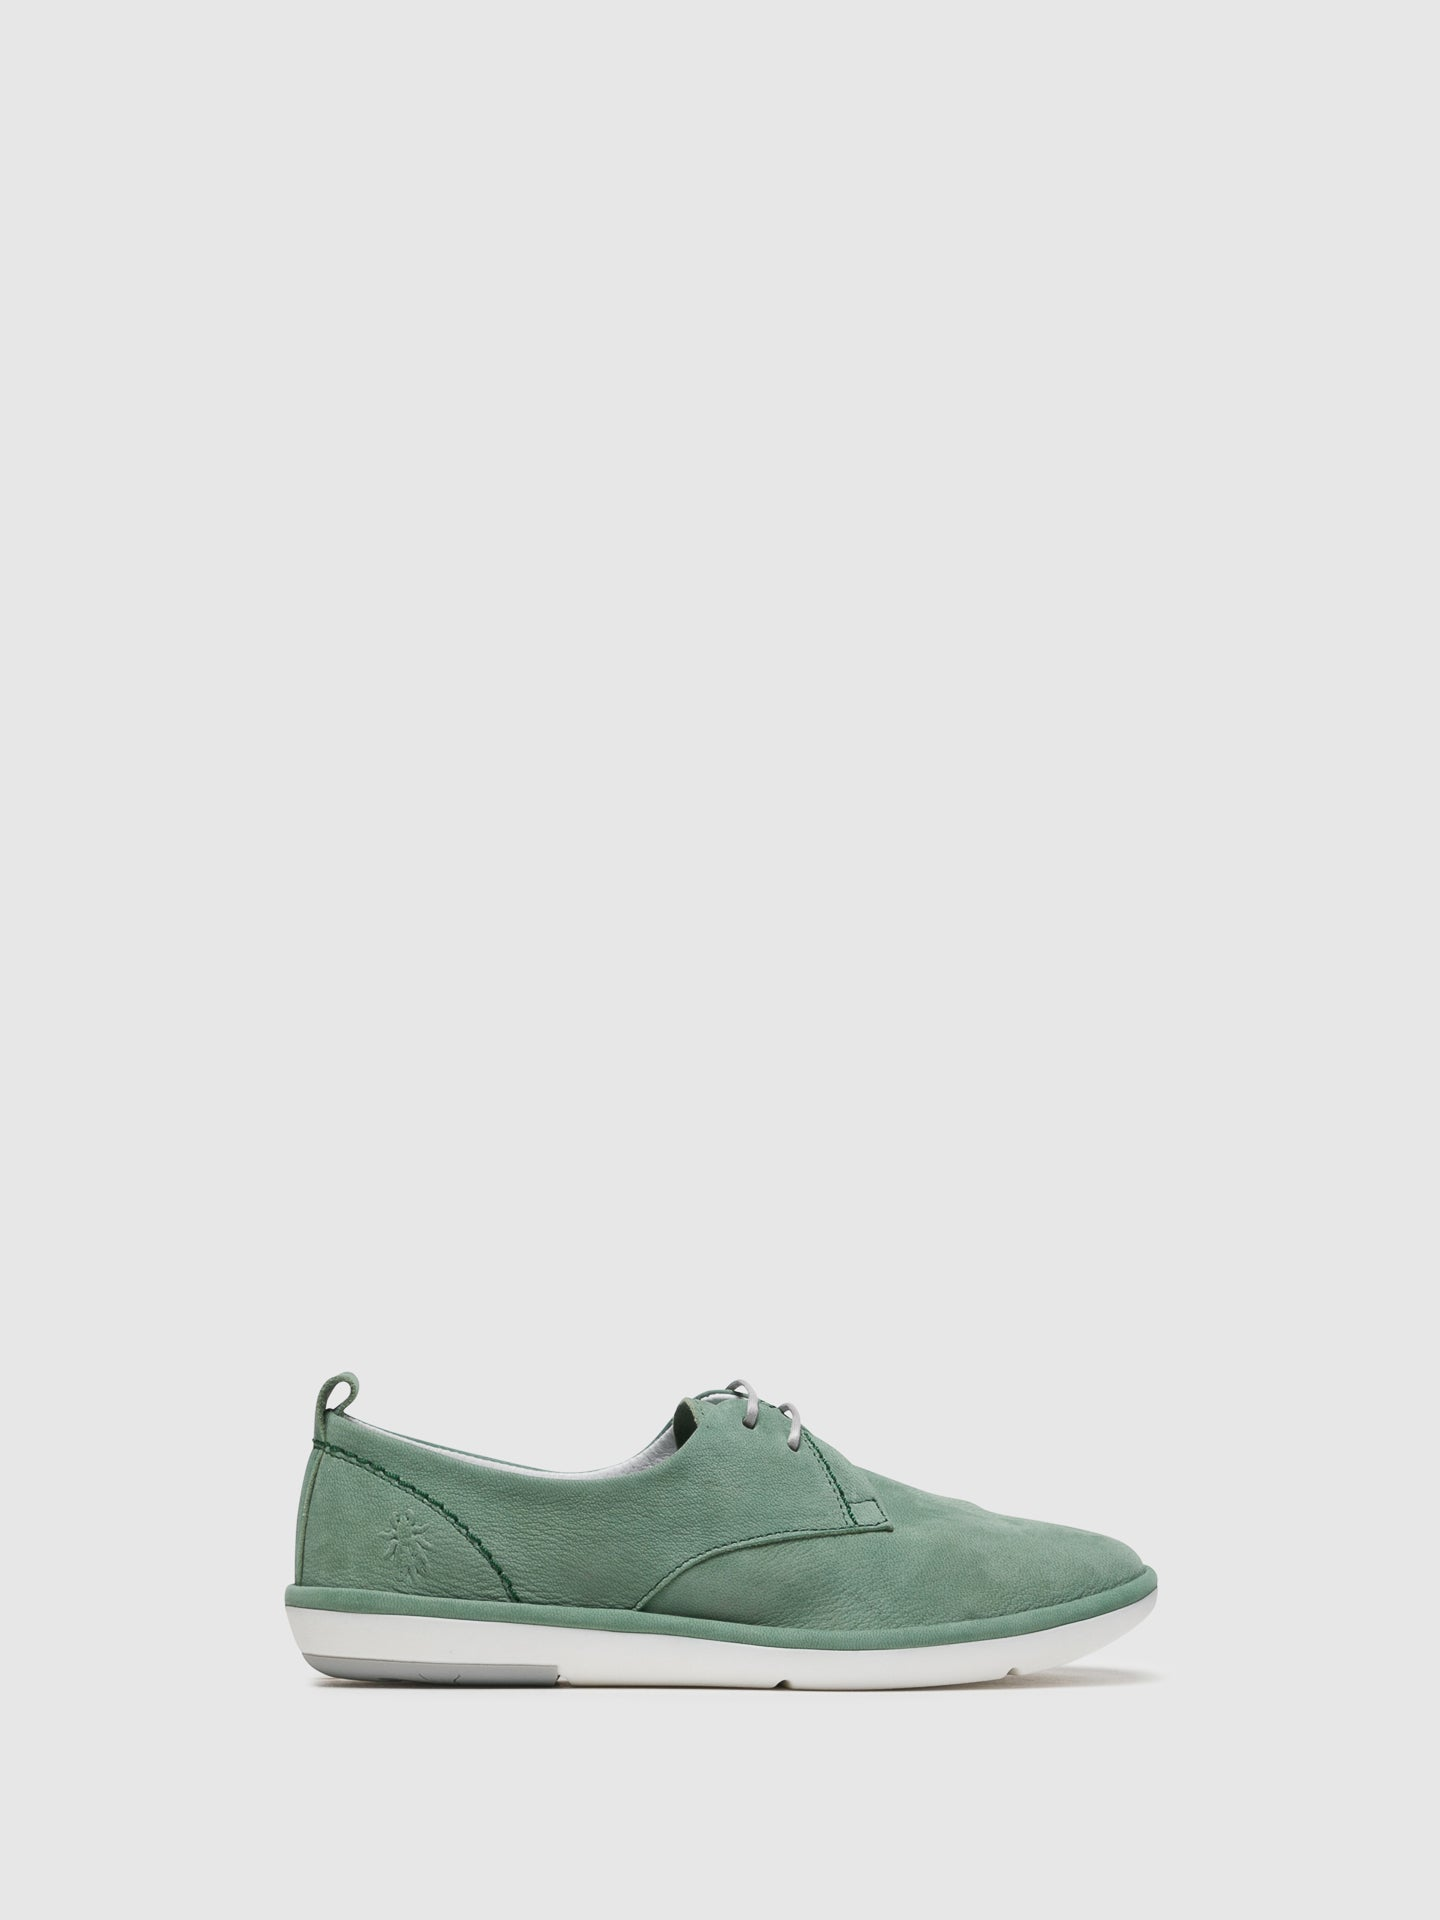 Fly London Zapatillas con Cordones en color Verde